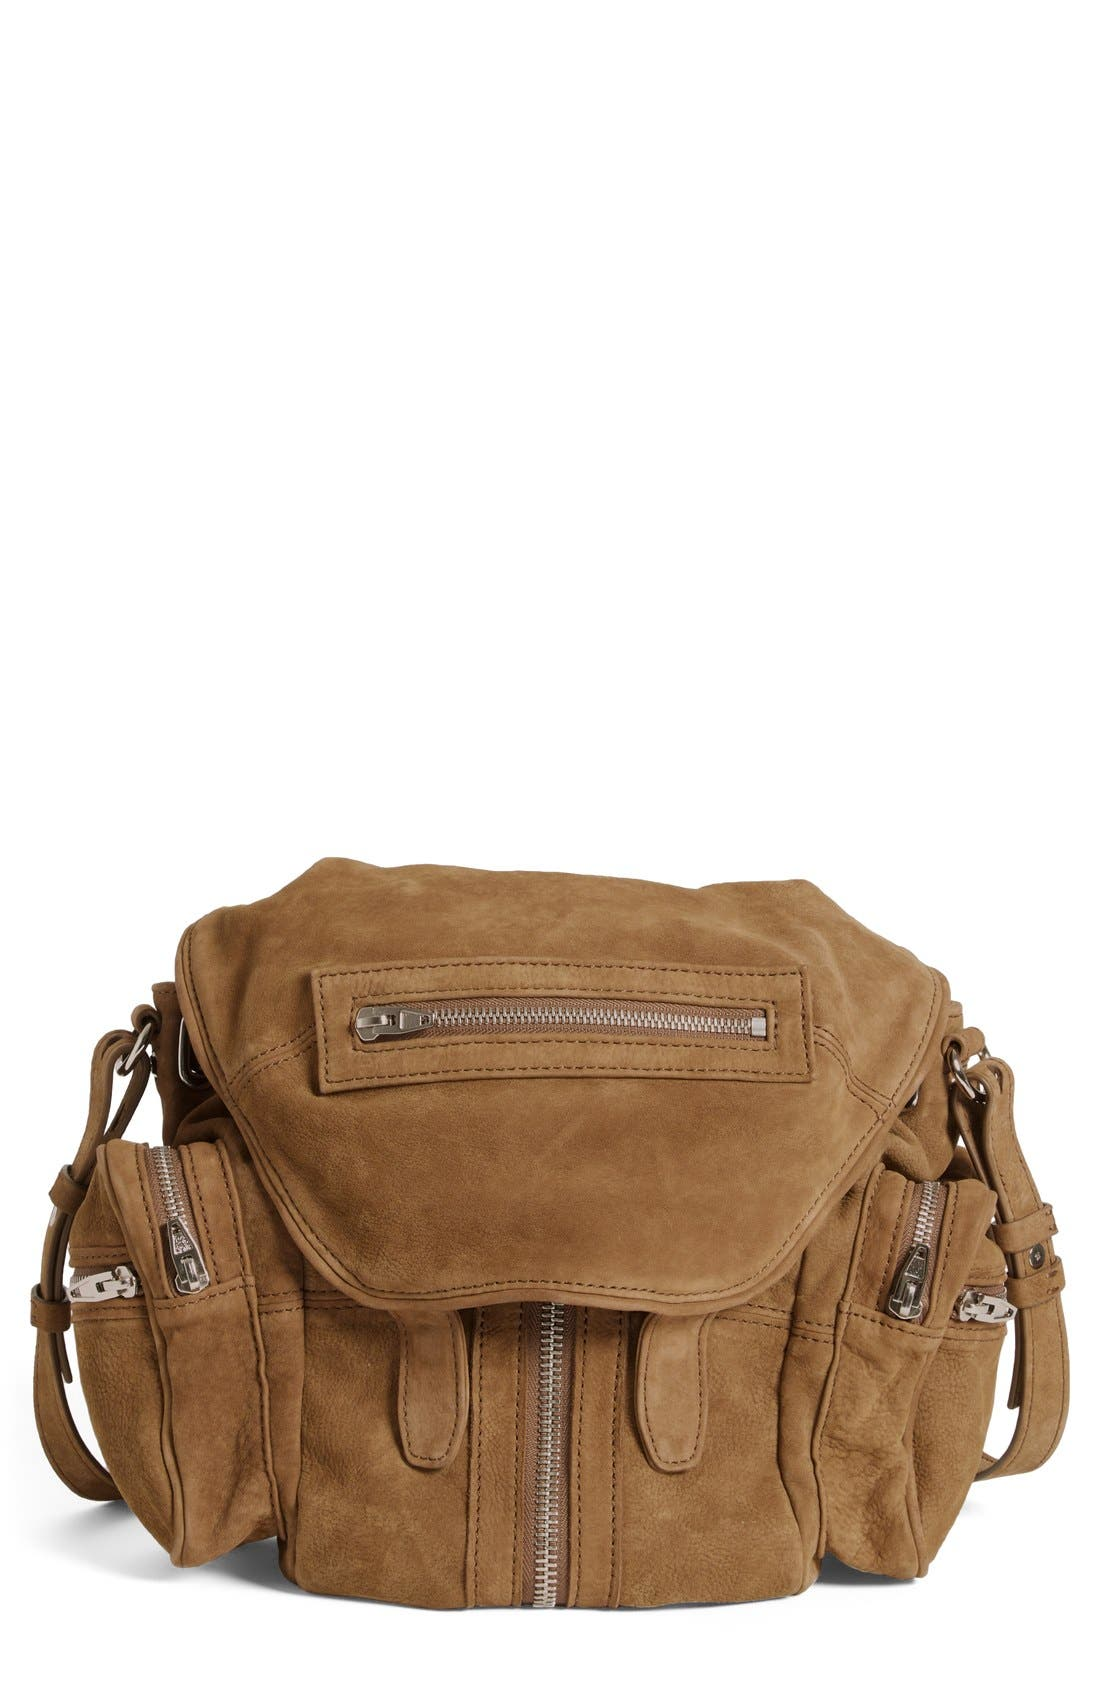 Main Image - Alexander Wang 'Mini Marti' Nubuck Leather Backpack